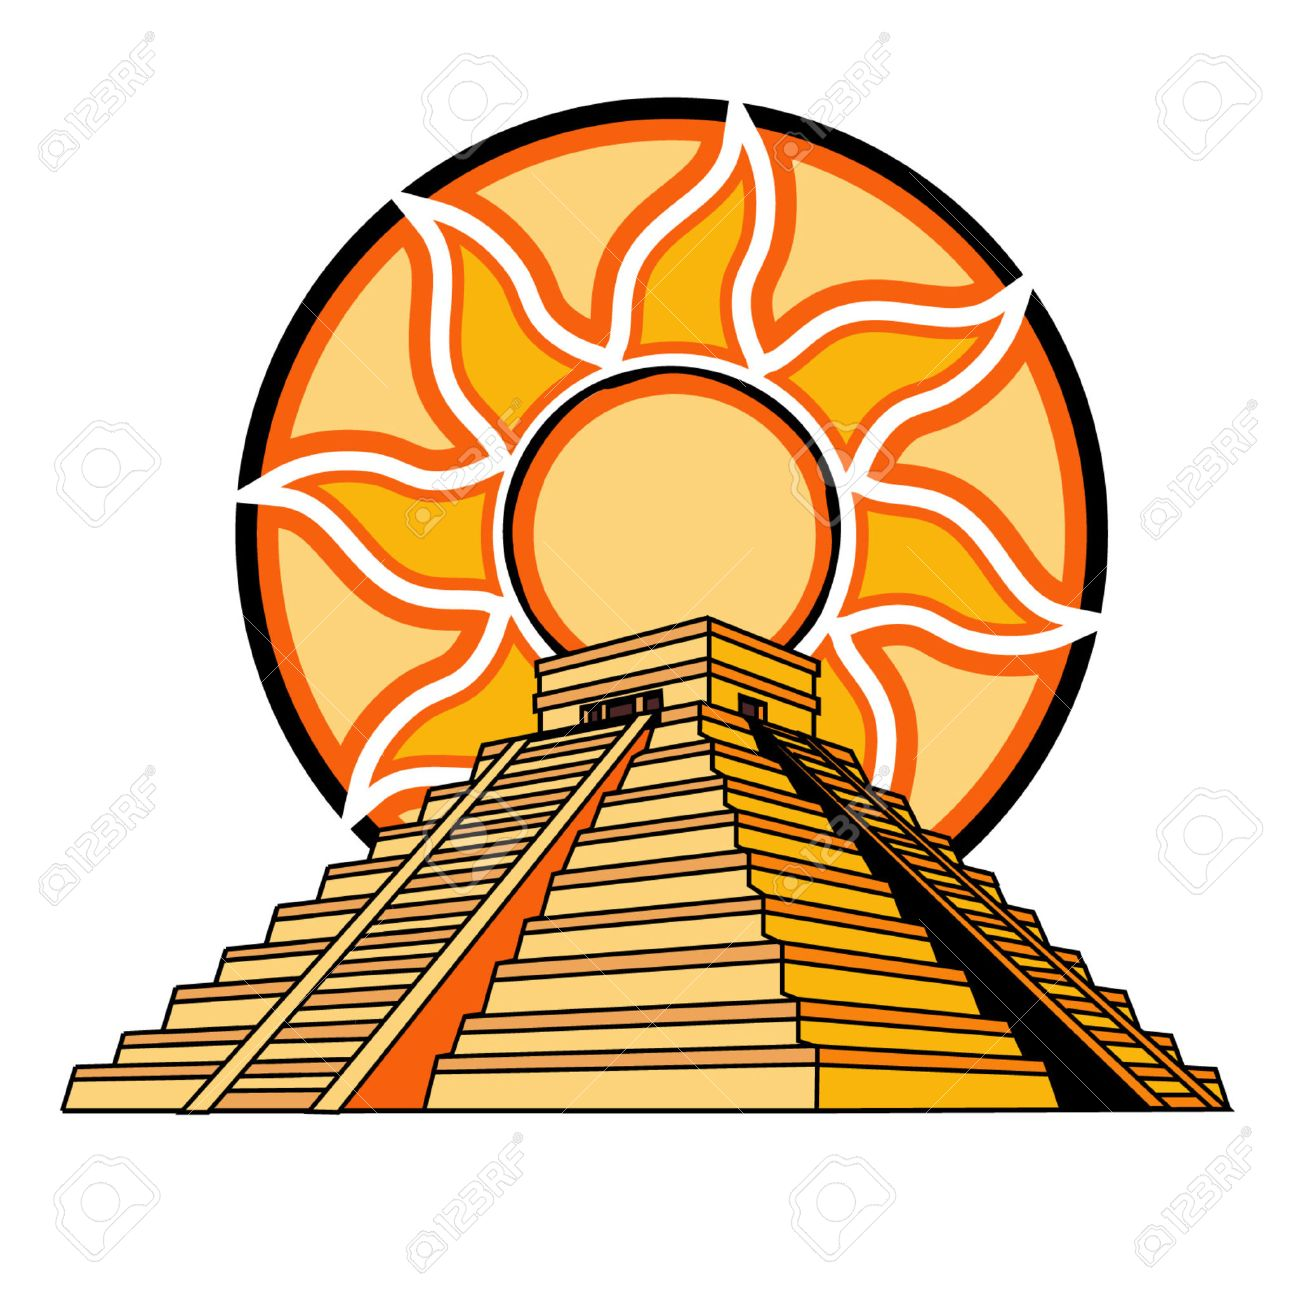 mayan or aztec temple with sun fire background royalty free cliparts rh 123rf com Mexican Fiesta Clip Art Mexican Vector Free Graphics